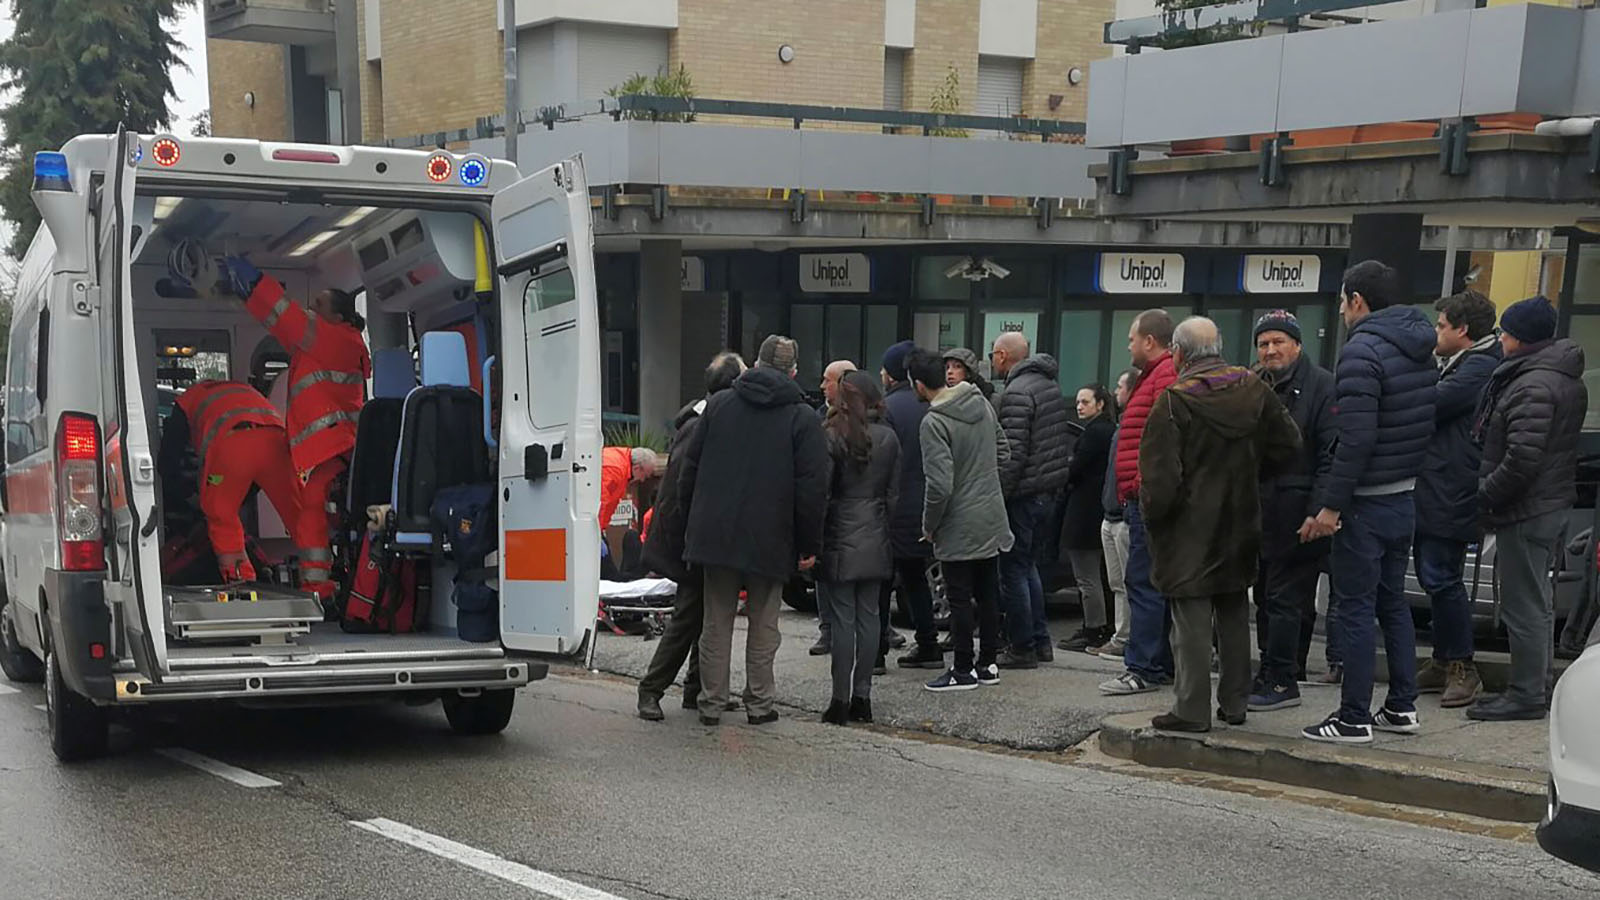 People look at healthcare personnel taking care of an injured person after being shot by gunfire from a vehicle, in Macerata